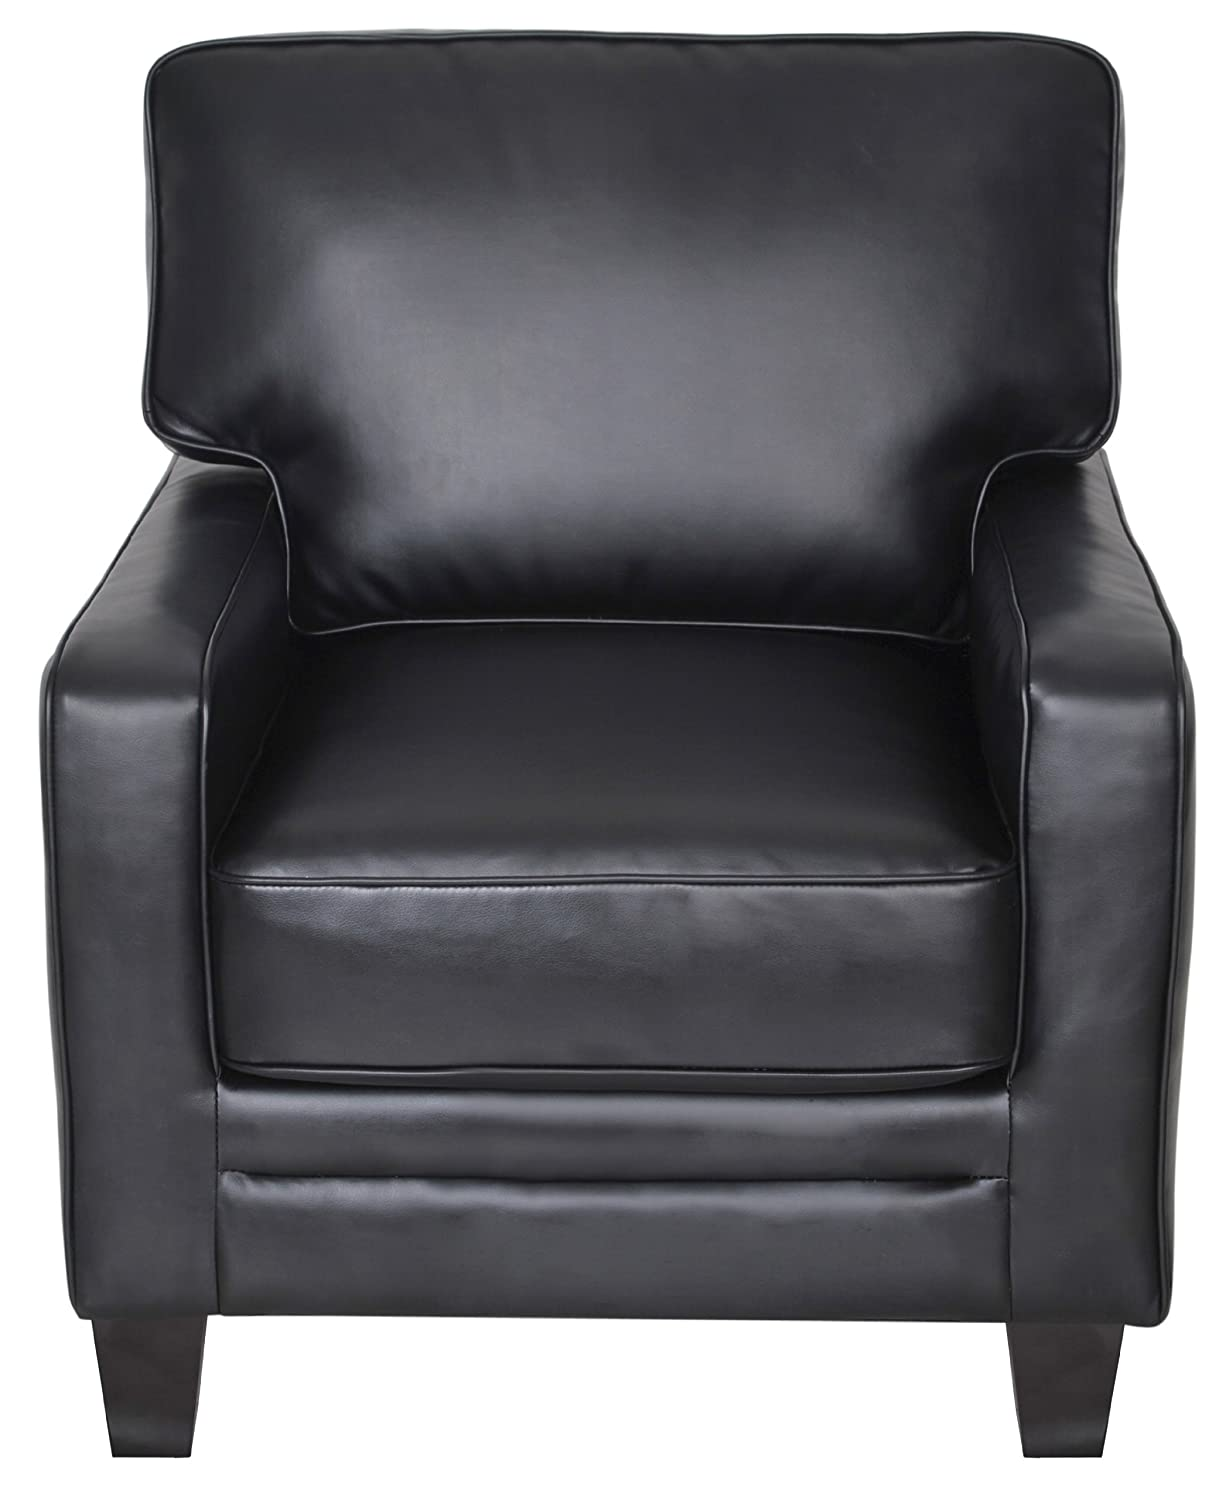 Amazon.com: Serta Santa Rosa Collection Accent Chair, Black Leather,  CR44106: Kitchen U0026 Dining